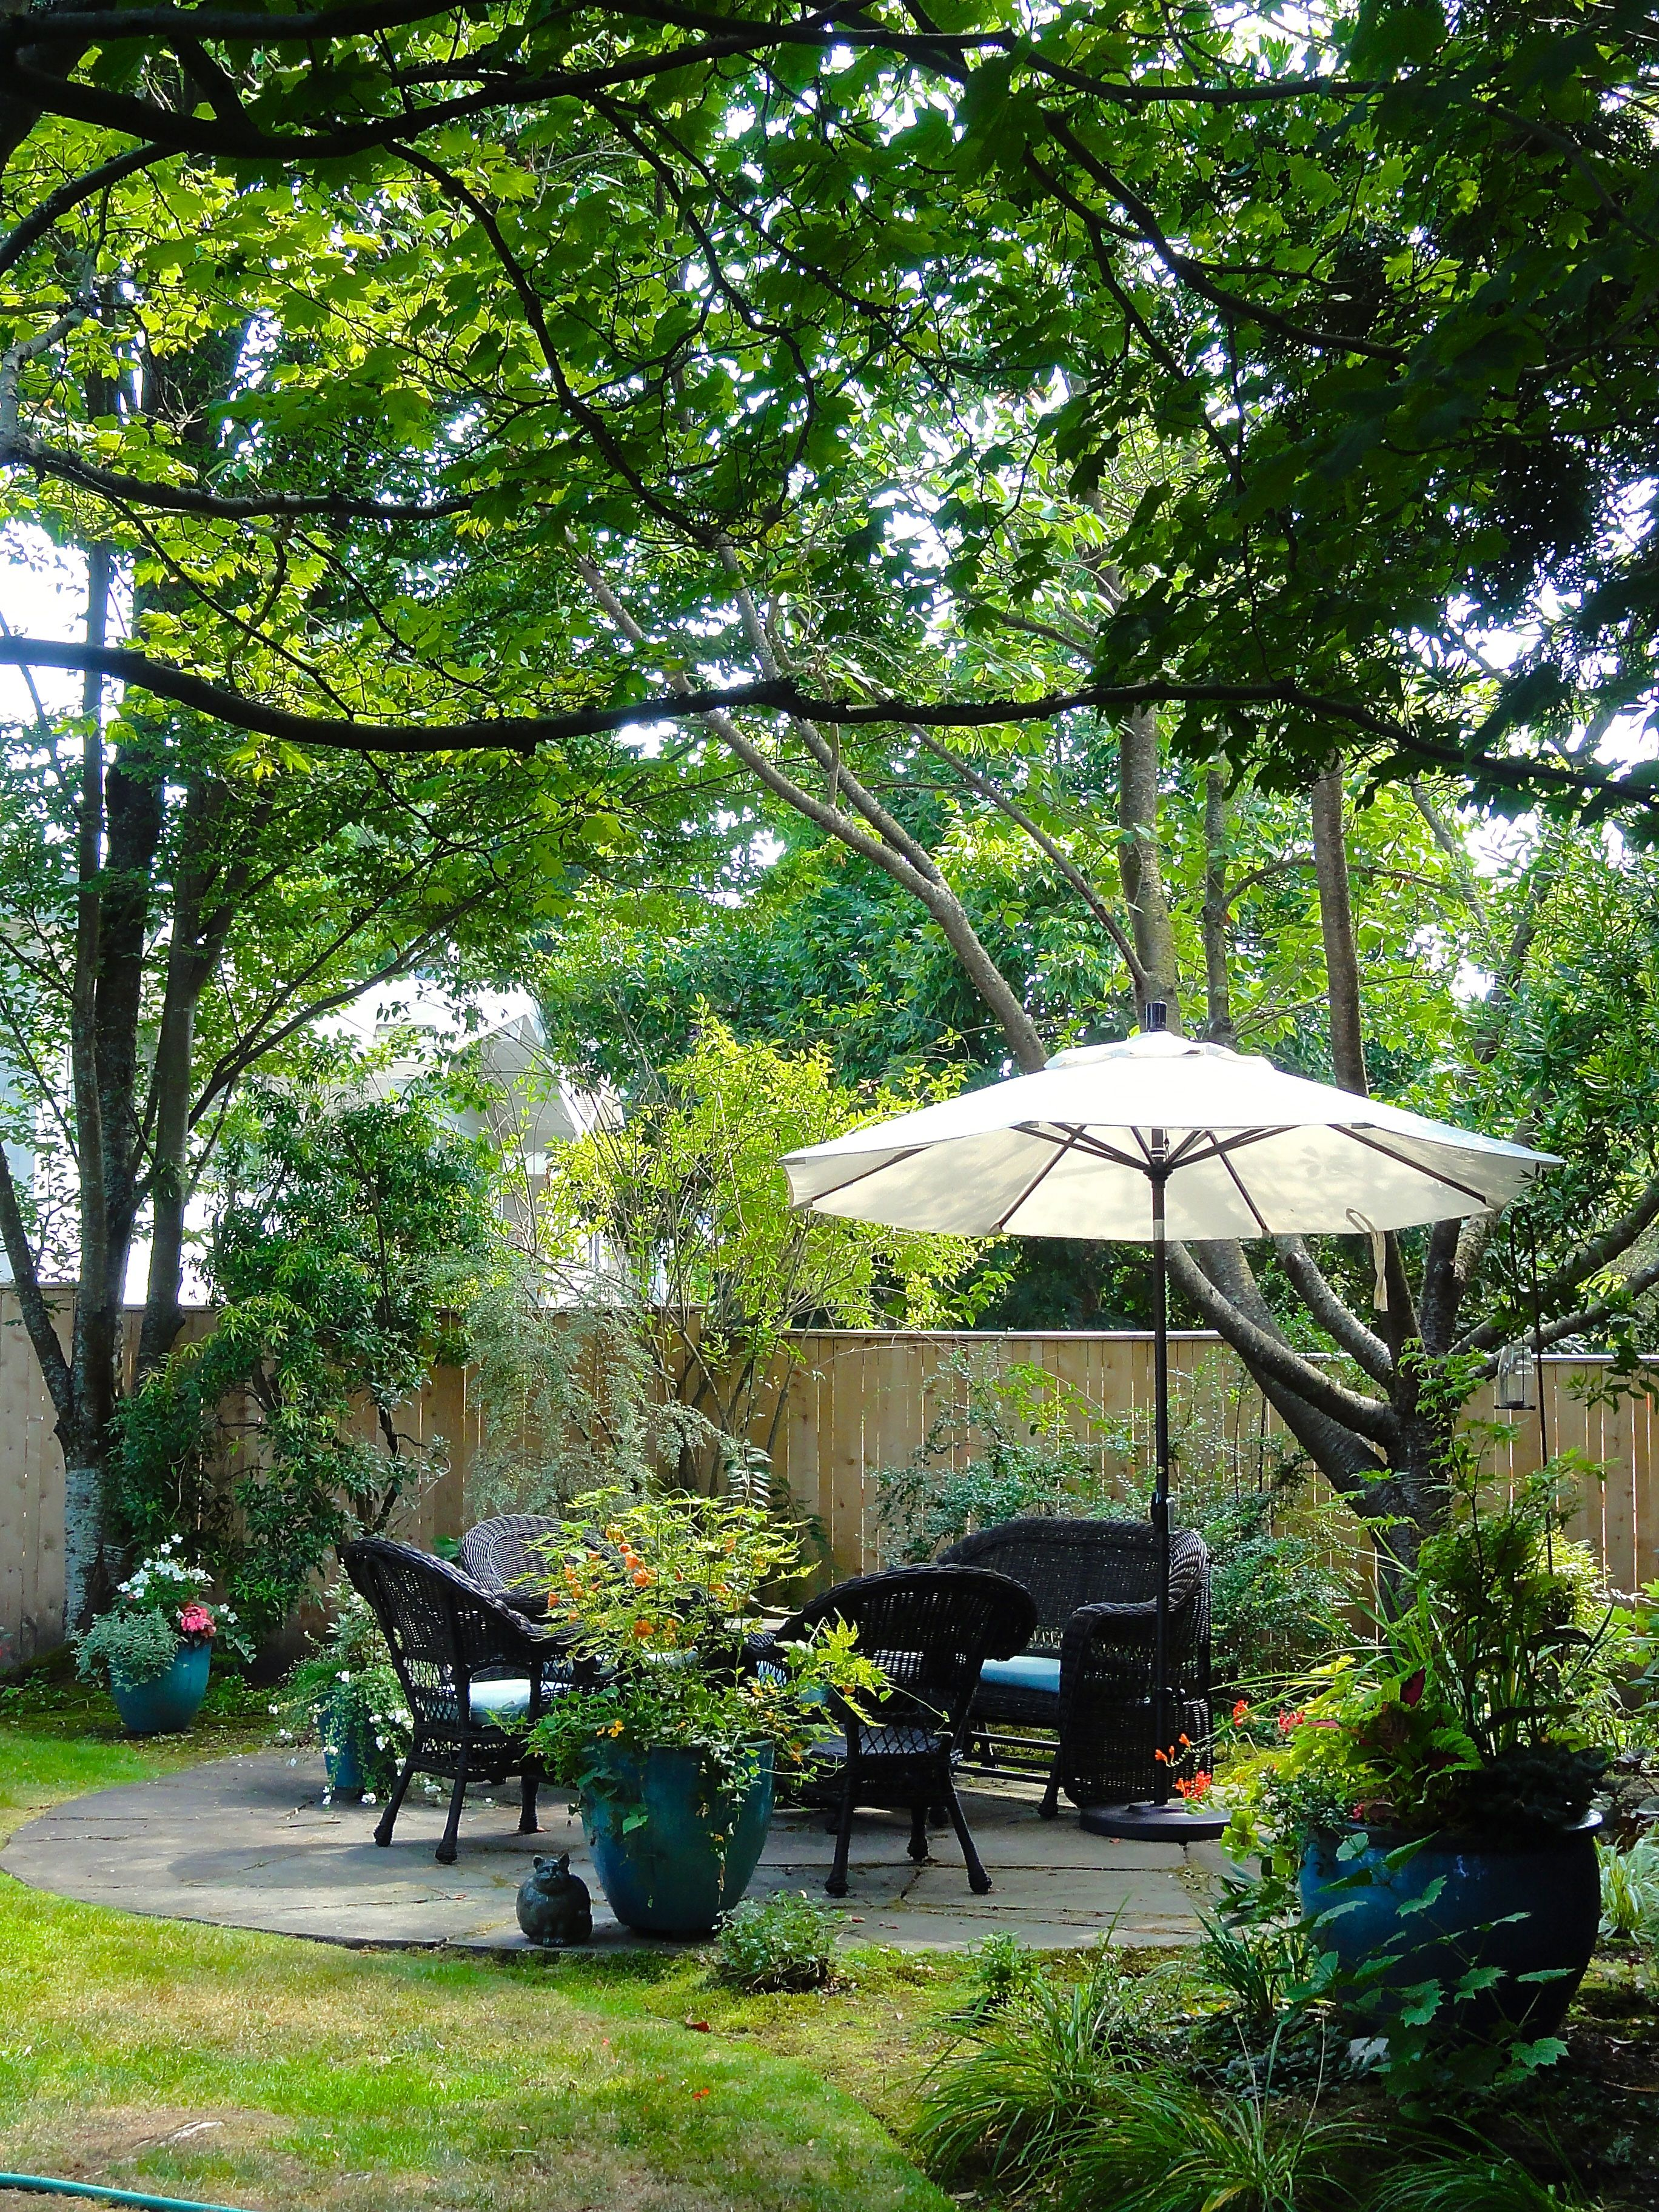 Dappled shade garden with umbrella so owner can stay dry in the warm ...